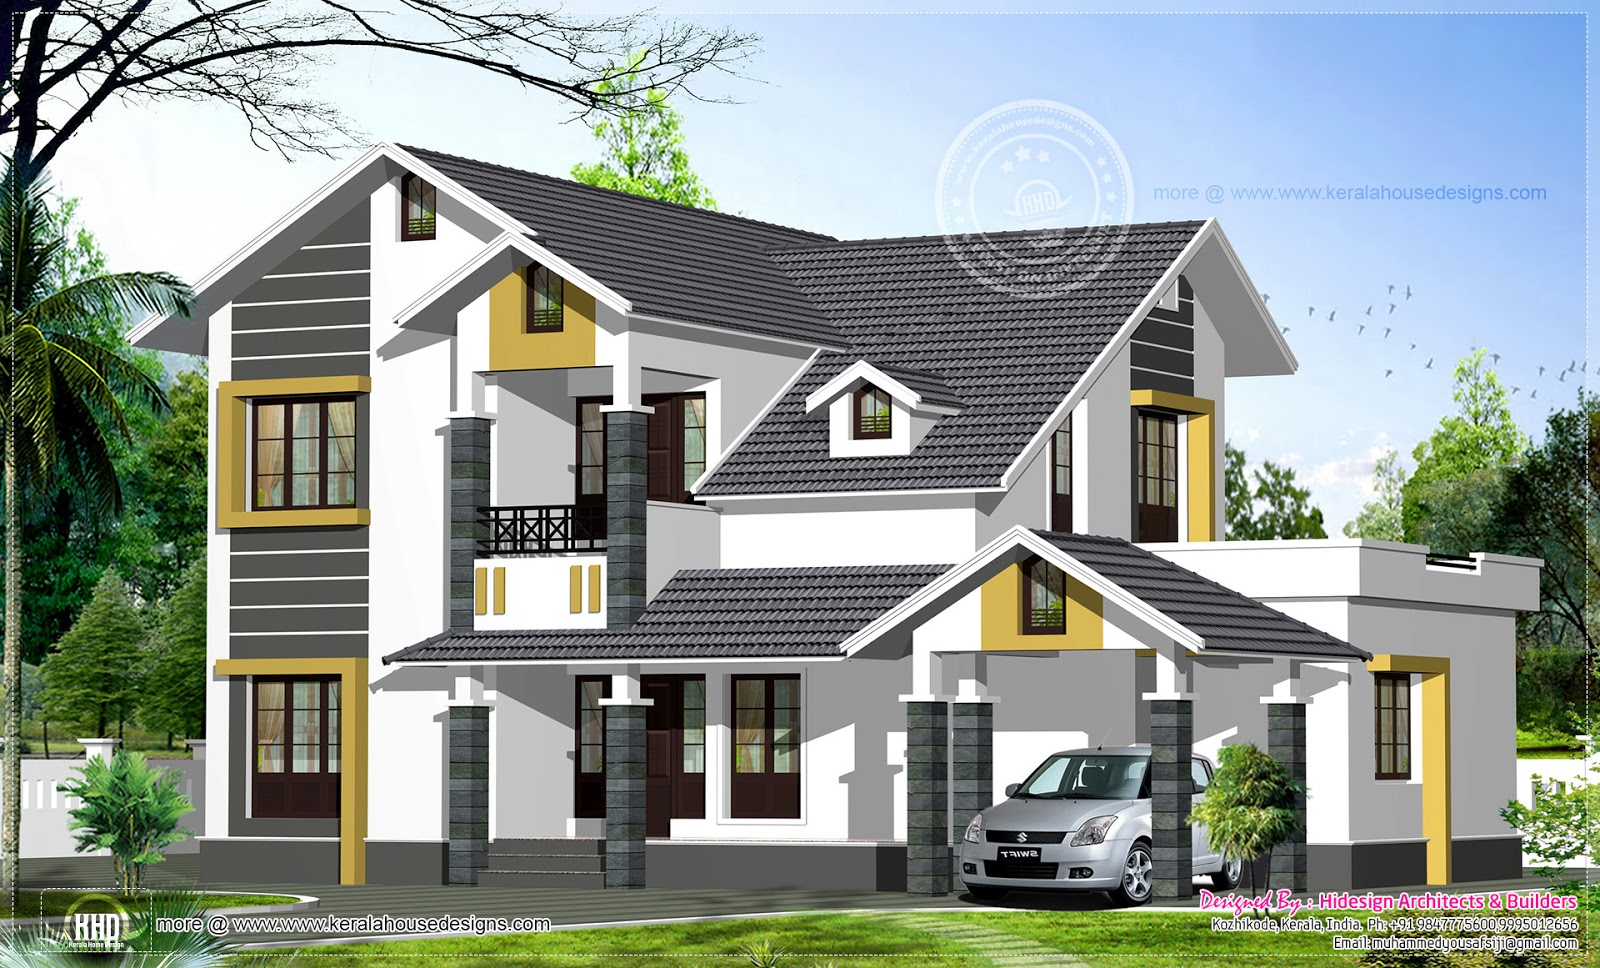 Sloping roof home exterior in 2474 house design for Home roof design india